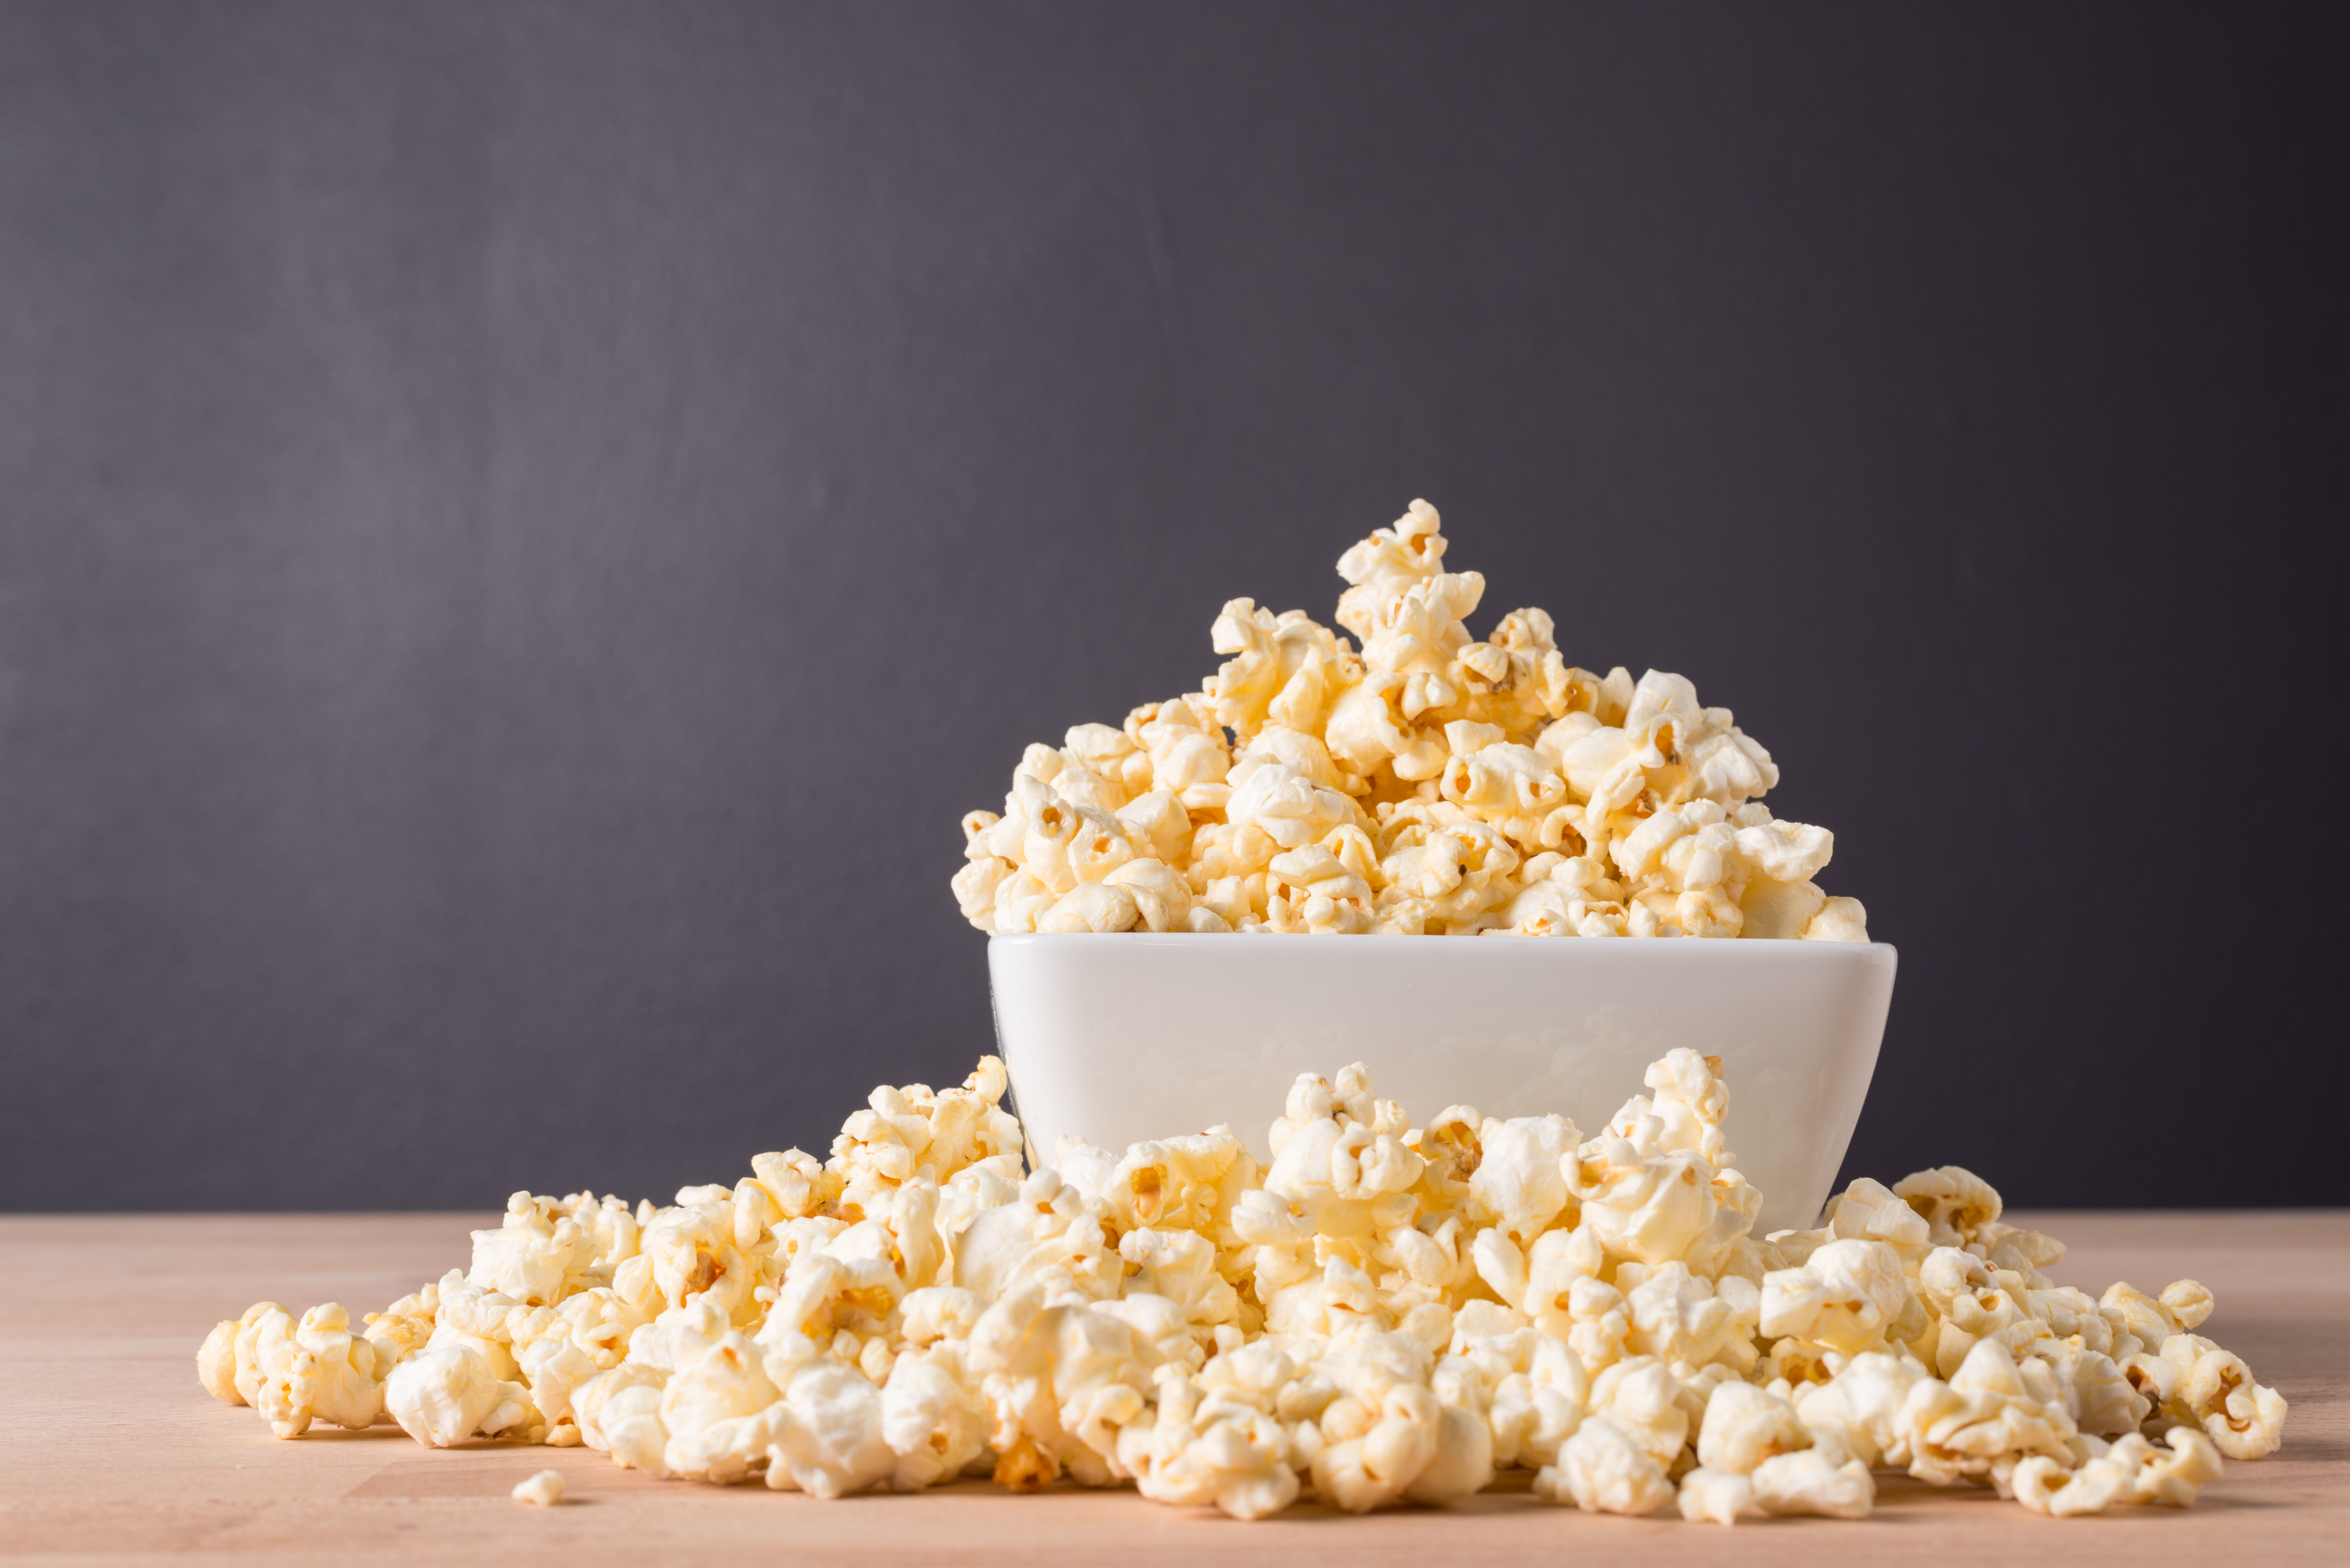 What Types of Corn Plants Make Popcorn? | Home Guides | SF Gate